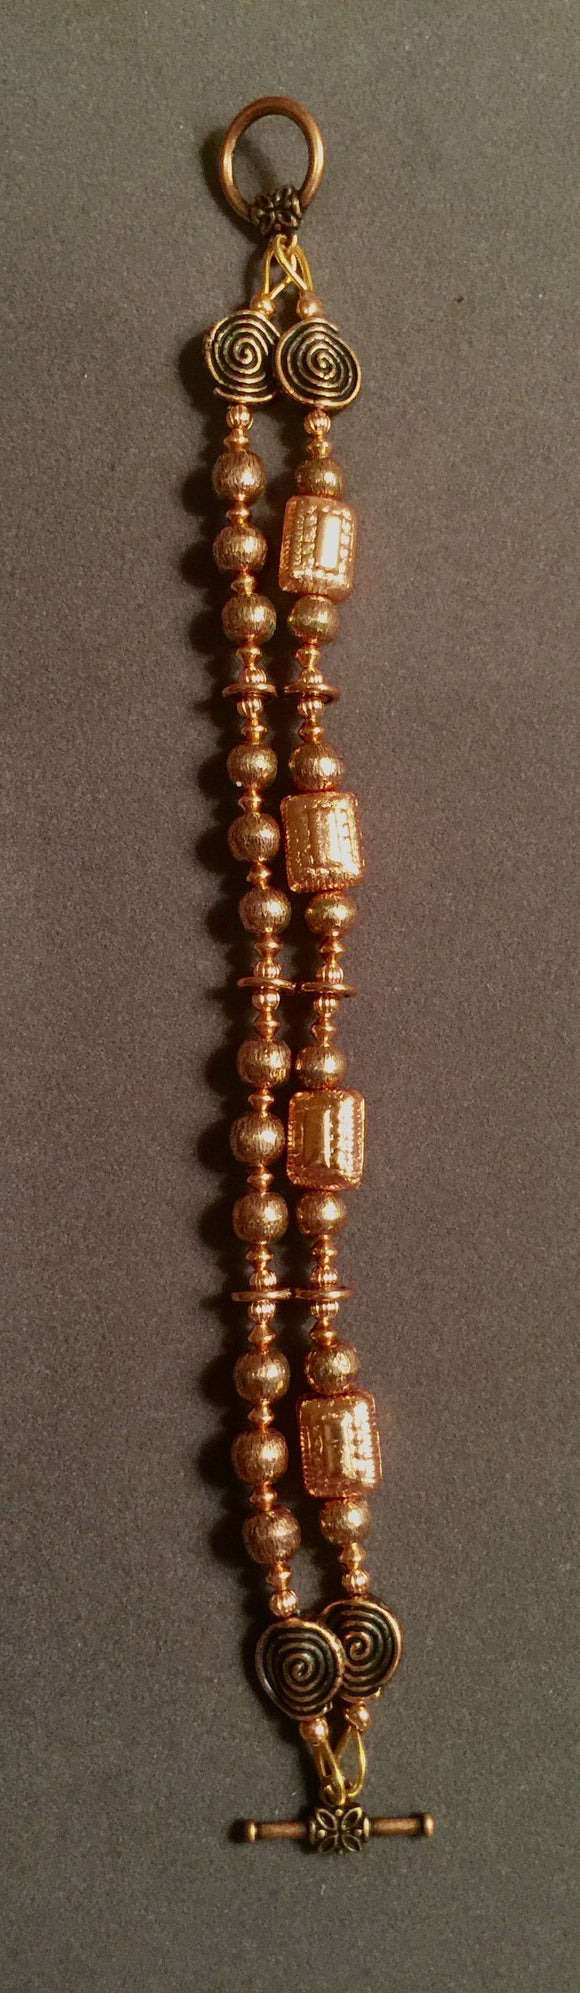 Two-Strand Antiqued Copper Toggle Clasp Bracelet  #17091